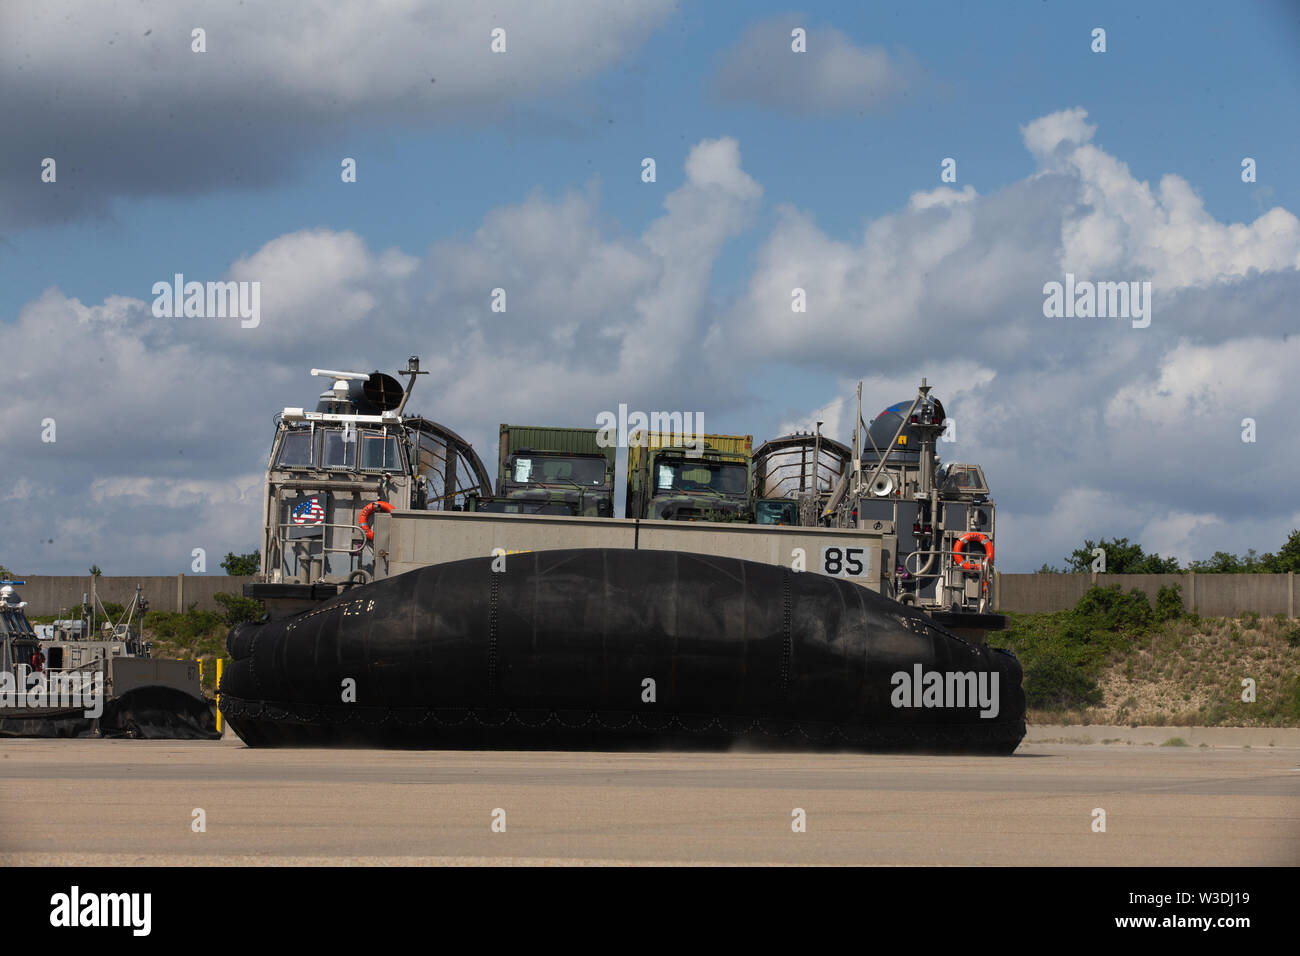 A U.S. Navy landing craft, air cushion assigned to Assault Craft Unit 4, transports vehicles assigned to Task Force 27 onto the Dock Landing Ship, USS Carter Hall (LSD 50) Harpers Ferry class, during a Defense Support for Civil Authorities (DSCA) loading exercise (LOADEX)  on Joint Expeditionary Base Little Creek, Virginia, July 11, 2019. U.S. Marines with II Marine Expeditionary Force rehearsed a LOADEX with the U.S. Navy to rapidly form, embark and deploy maritime DSCA operations in support of U.S. Northern Command. (U.S. Marine Corps photo by Lance Cpl. Adaezia Chavez) - Stock Image